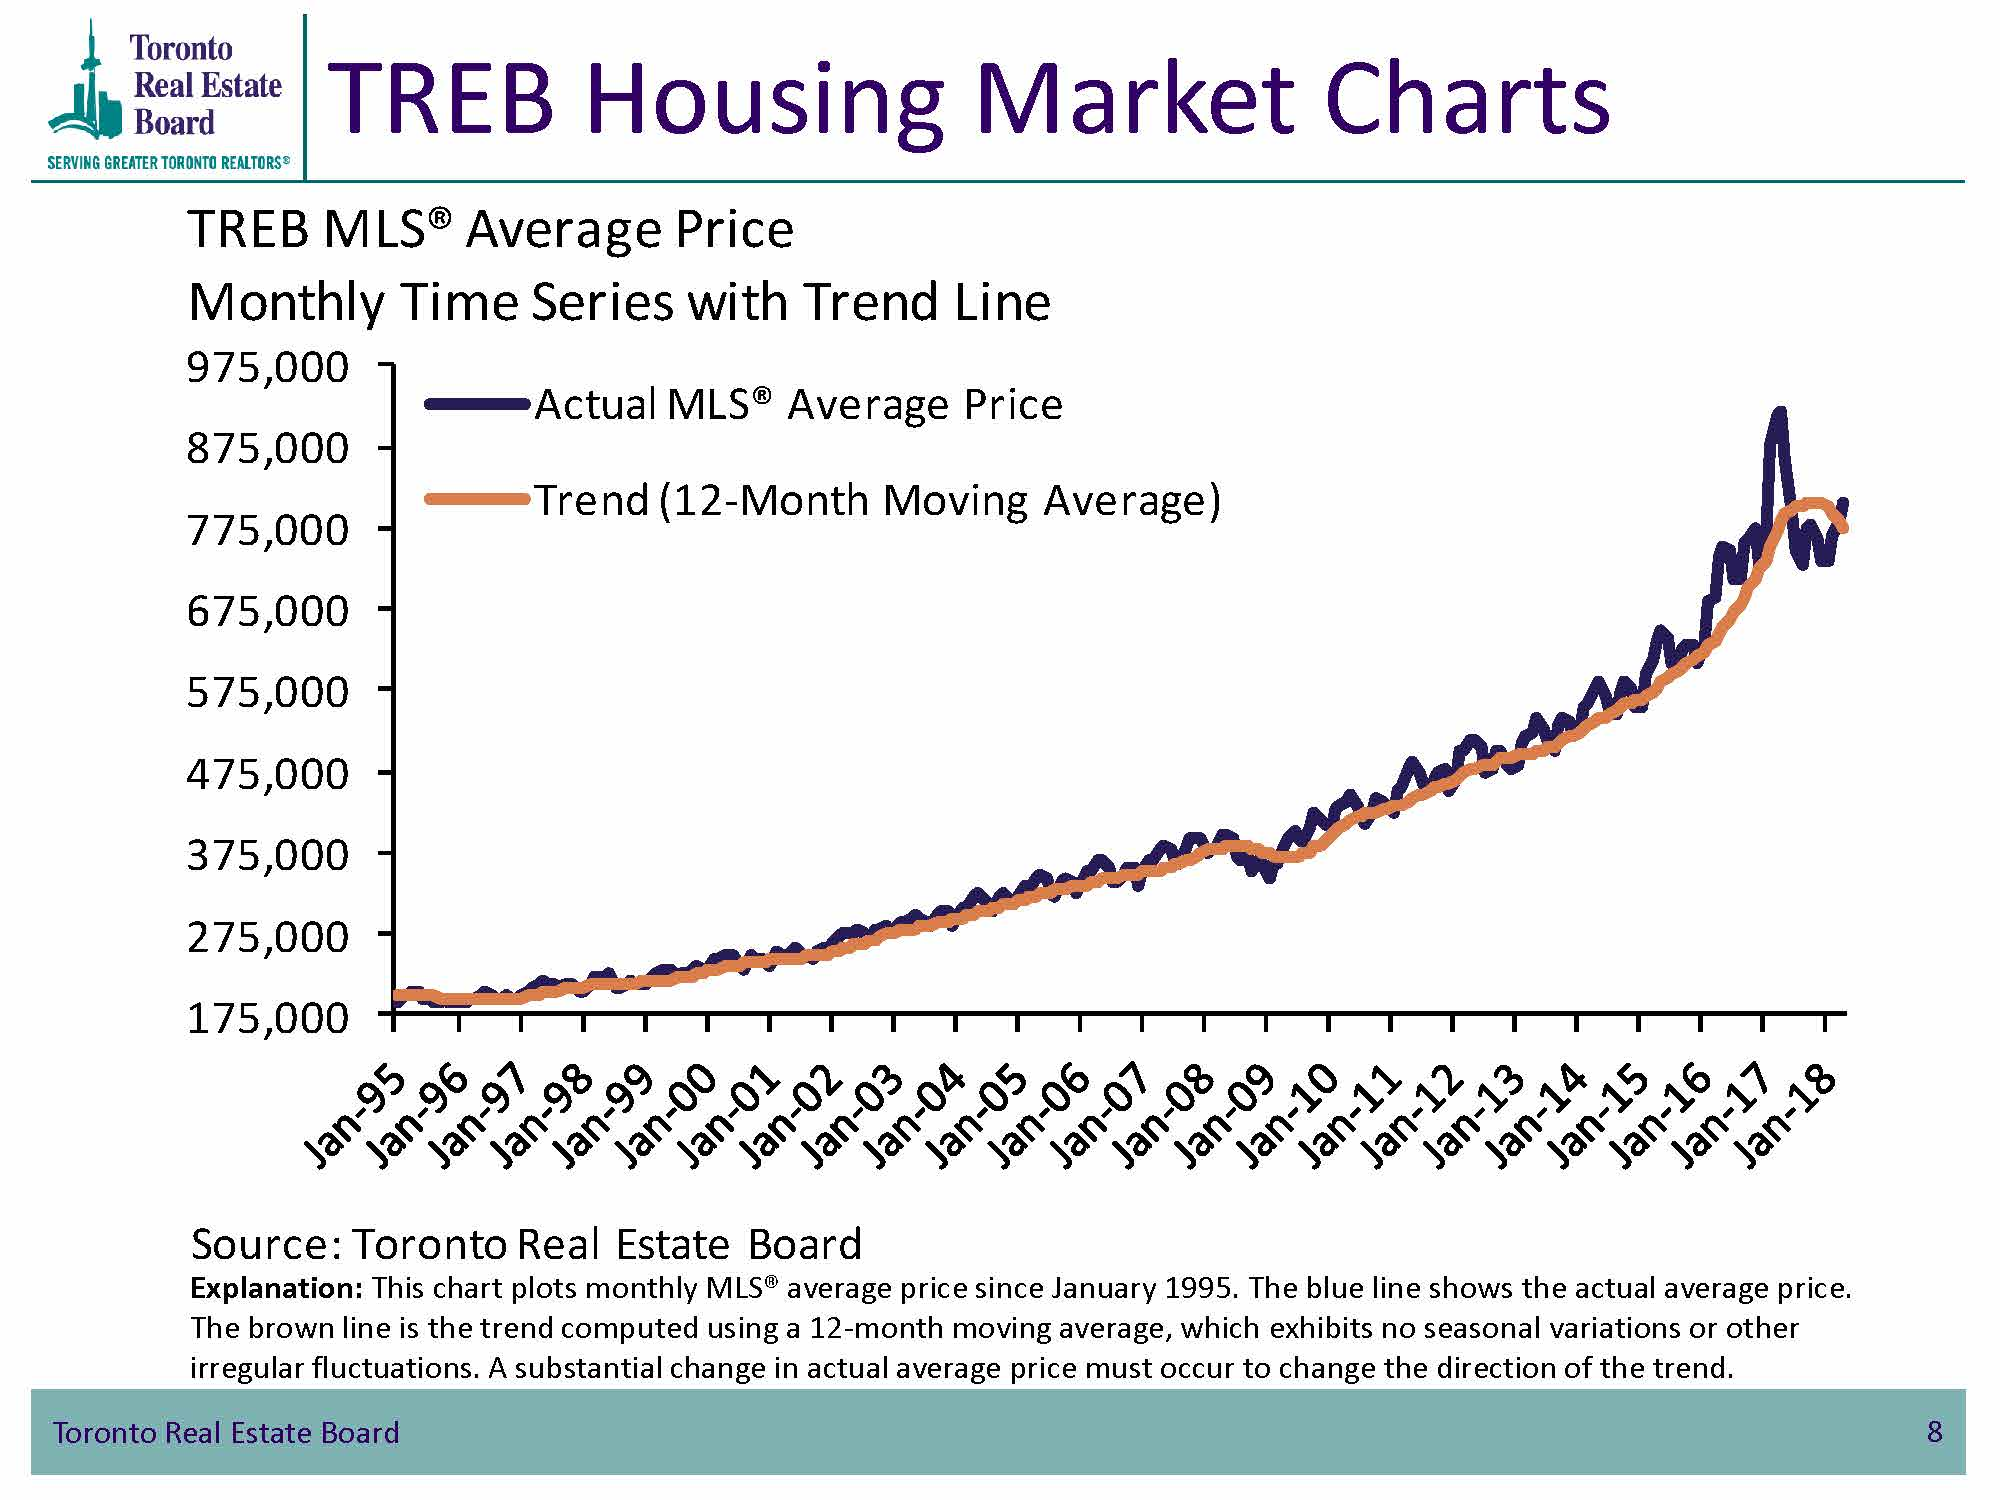 TREB Housing Market Charts TorontoMLS Average Price - Monthly Time Series with Trend Line